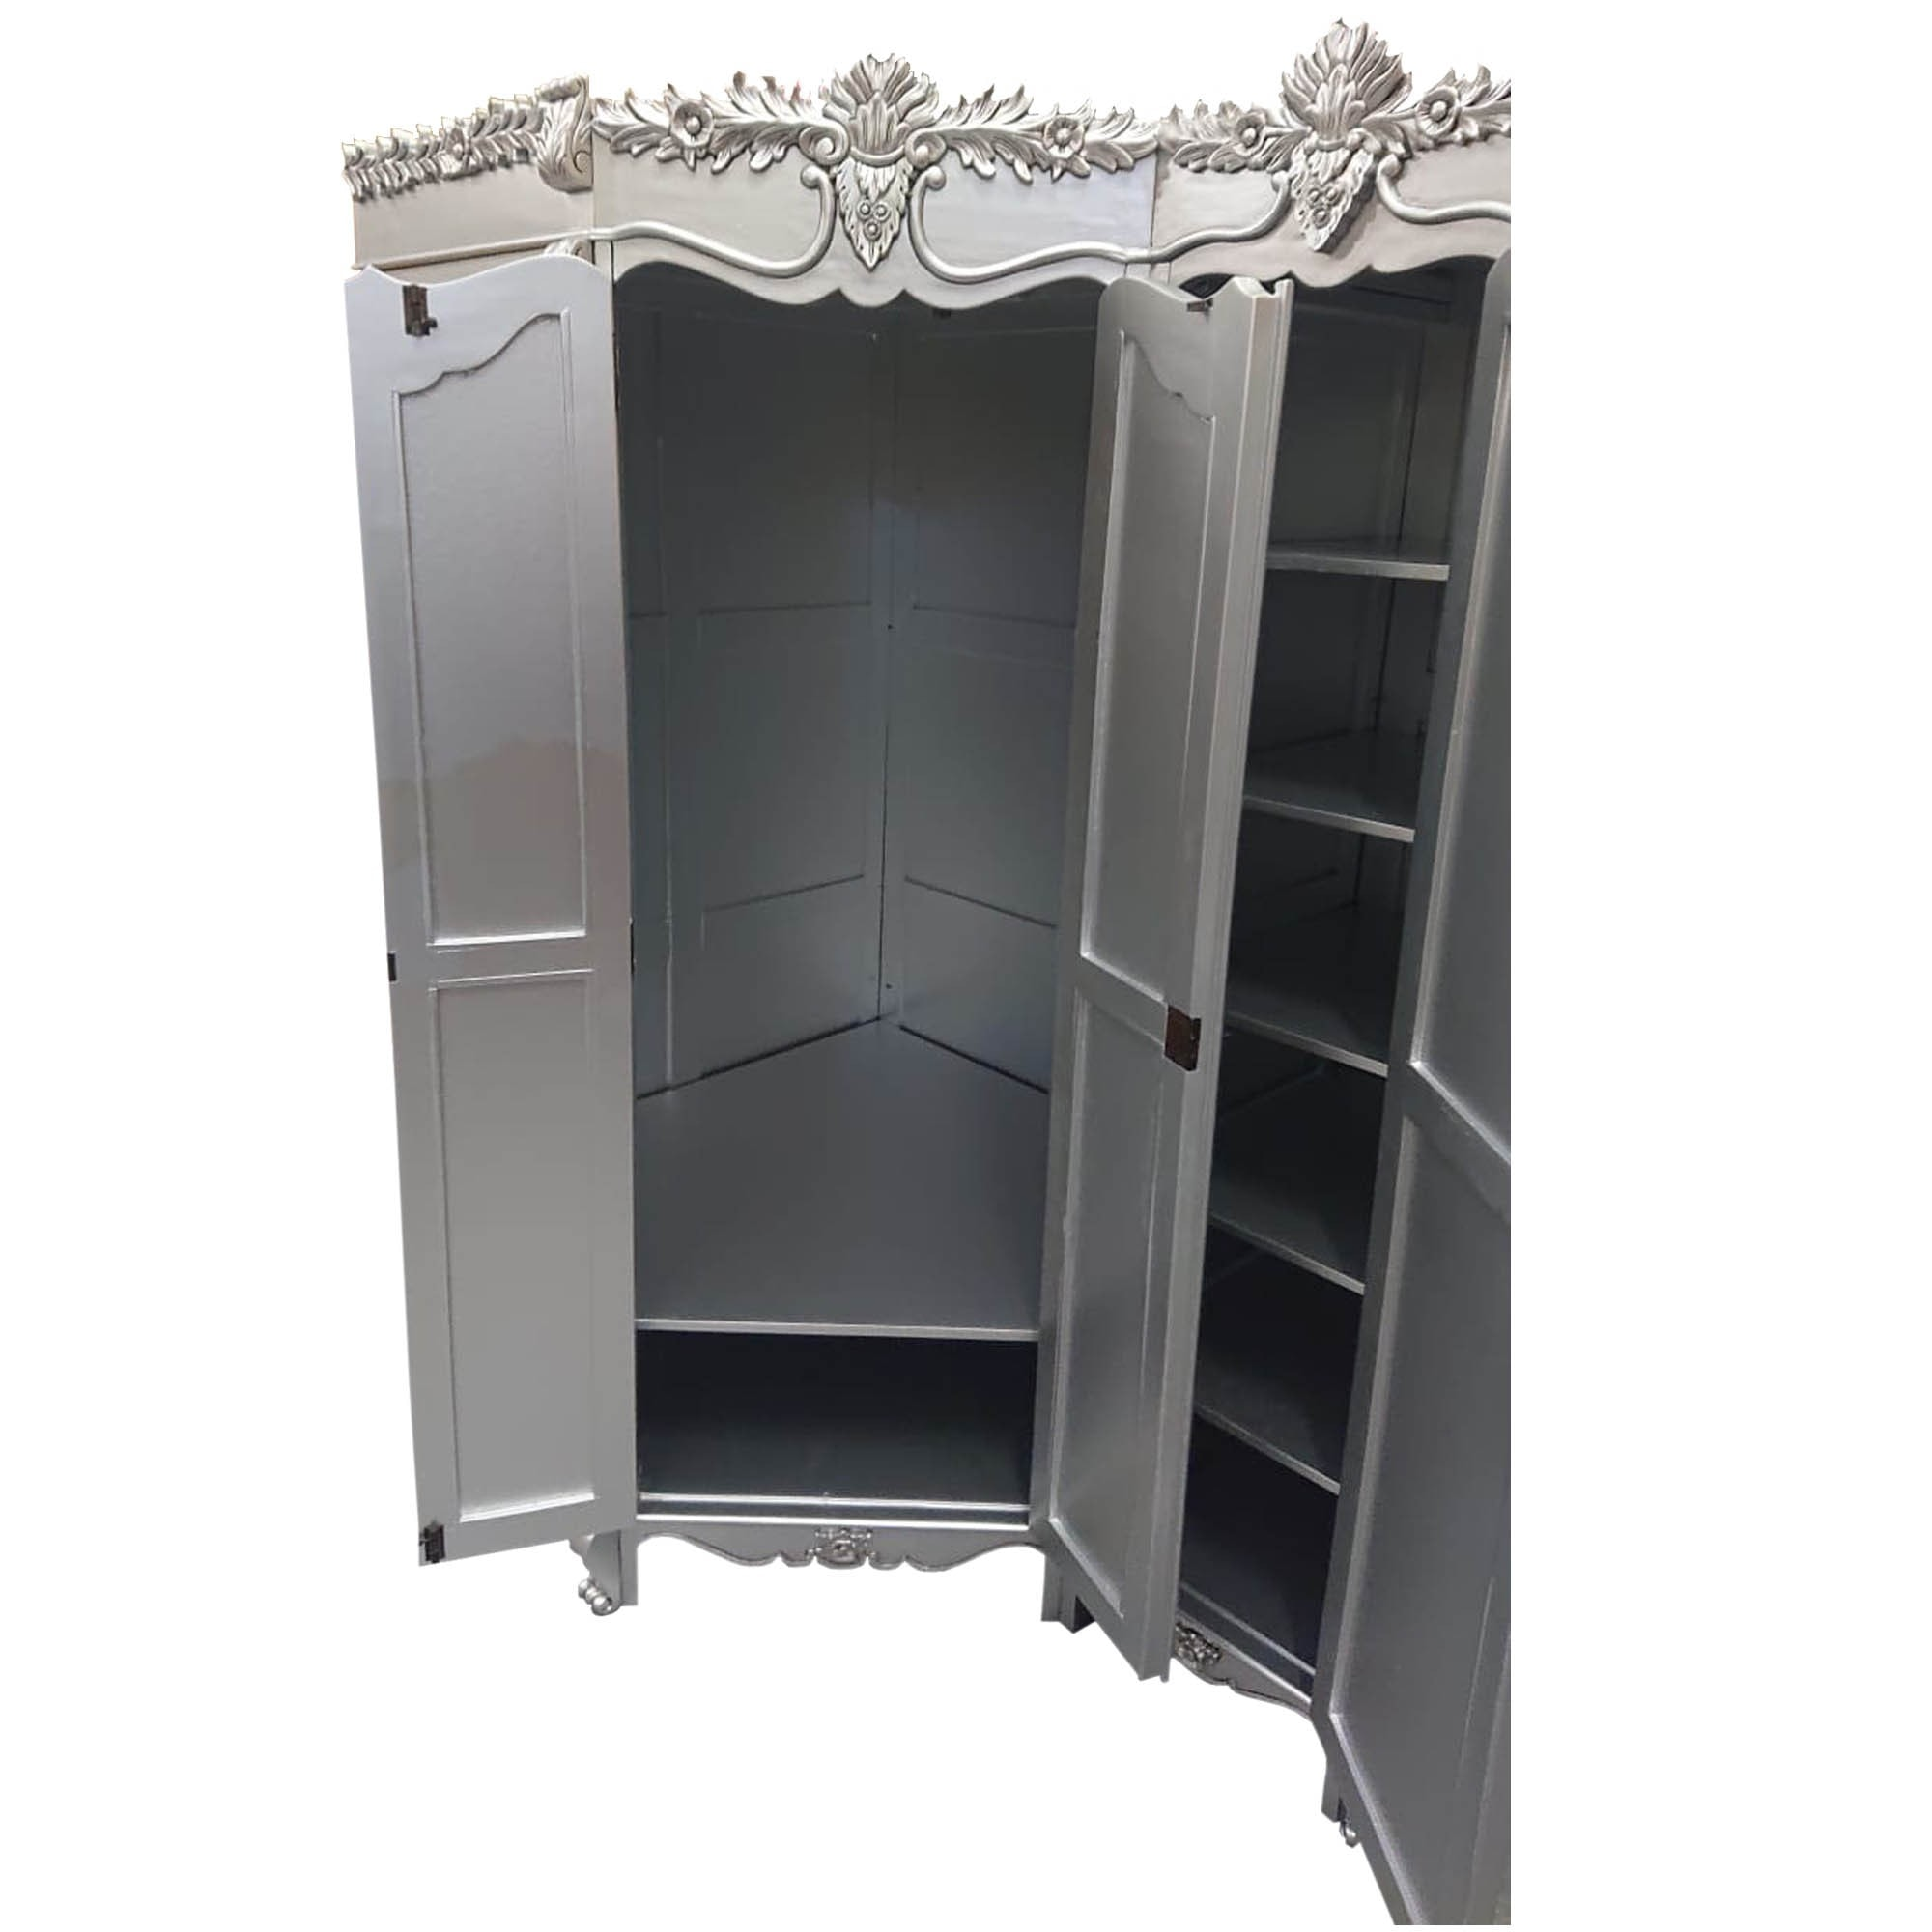 Antique French Style Corner Wardrobe French Furniture Hd365